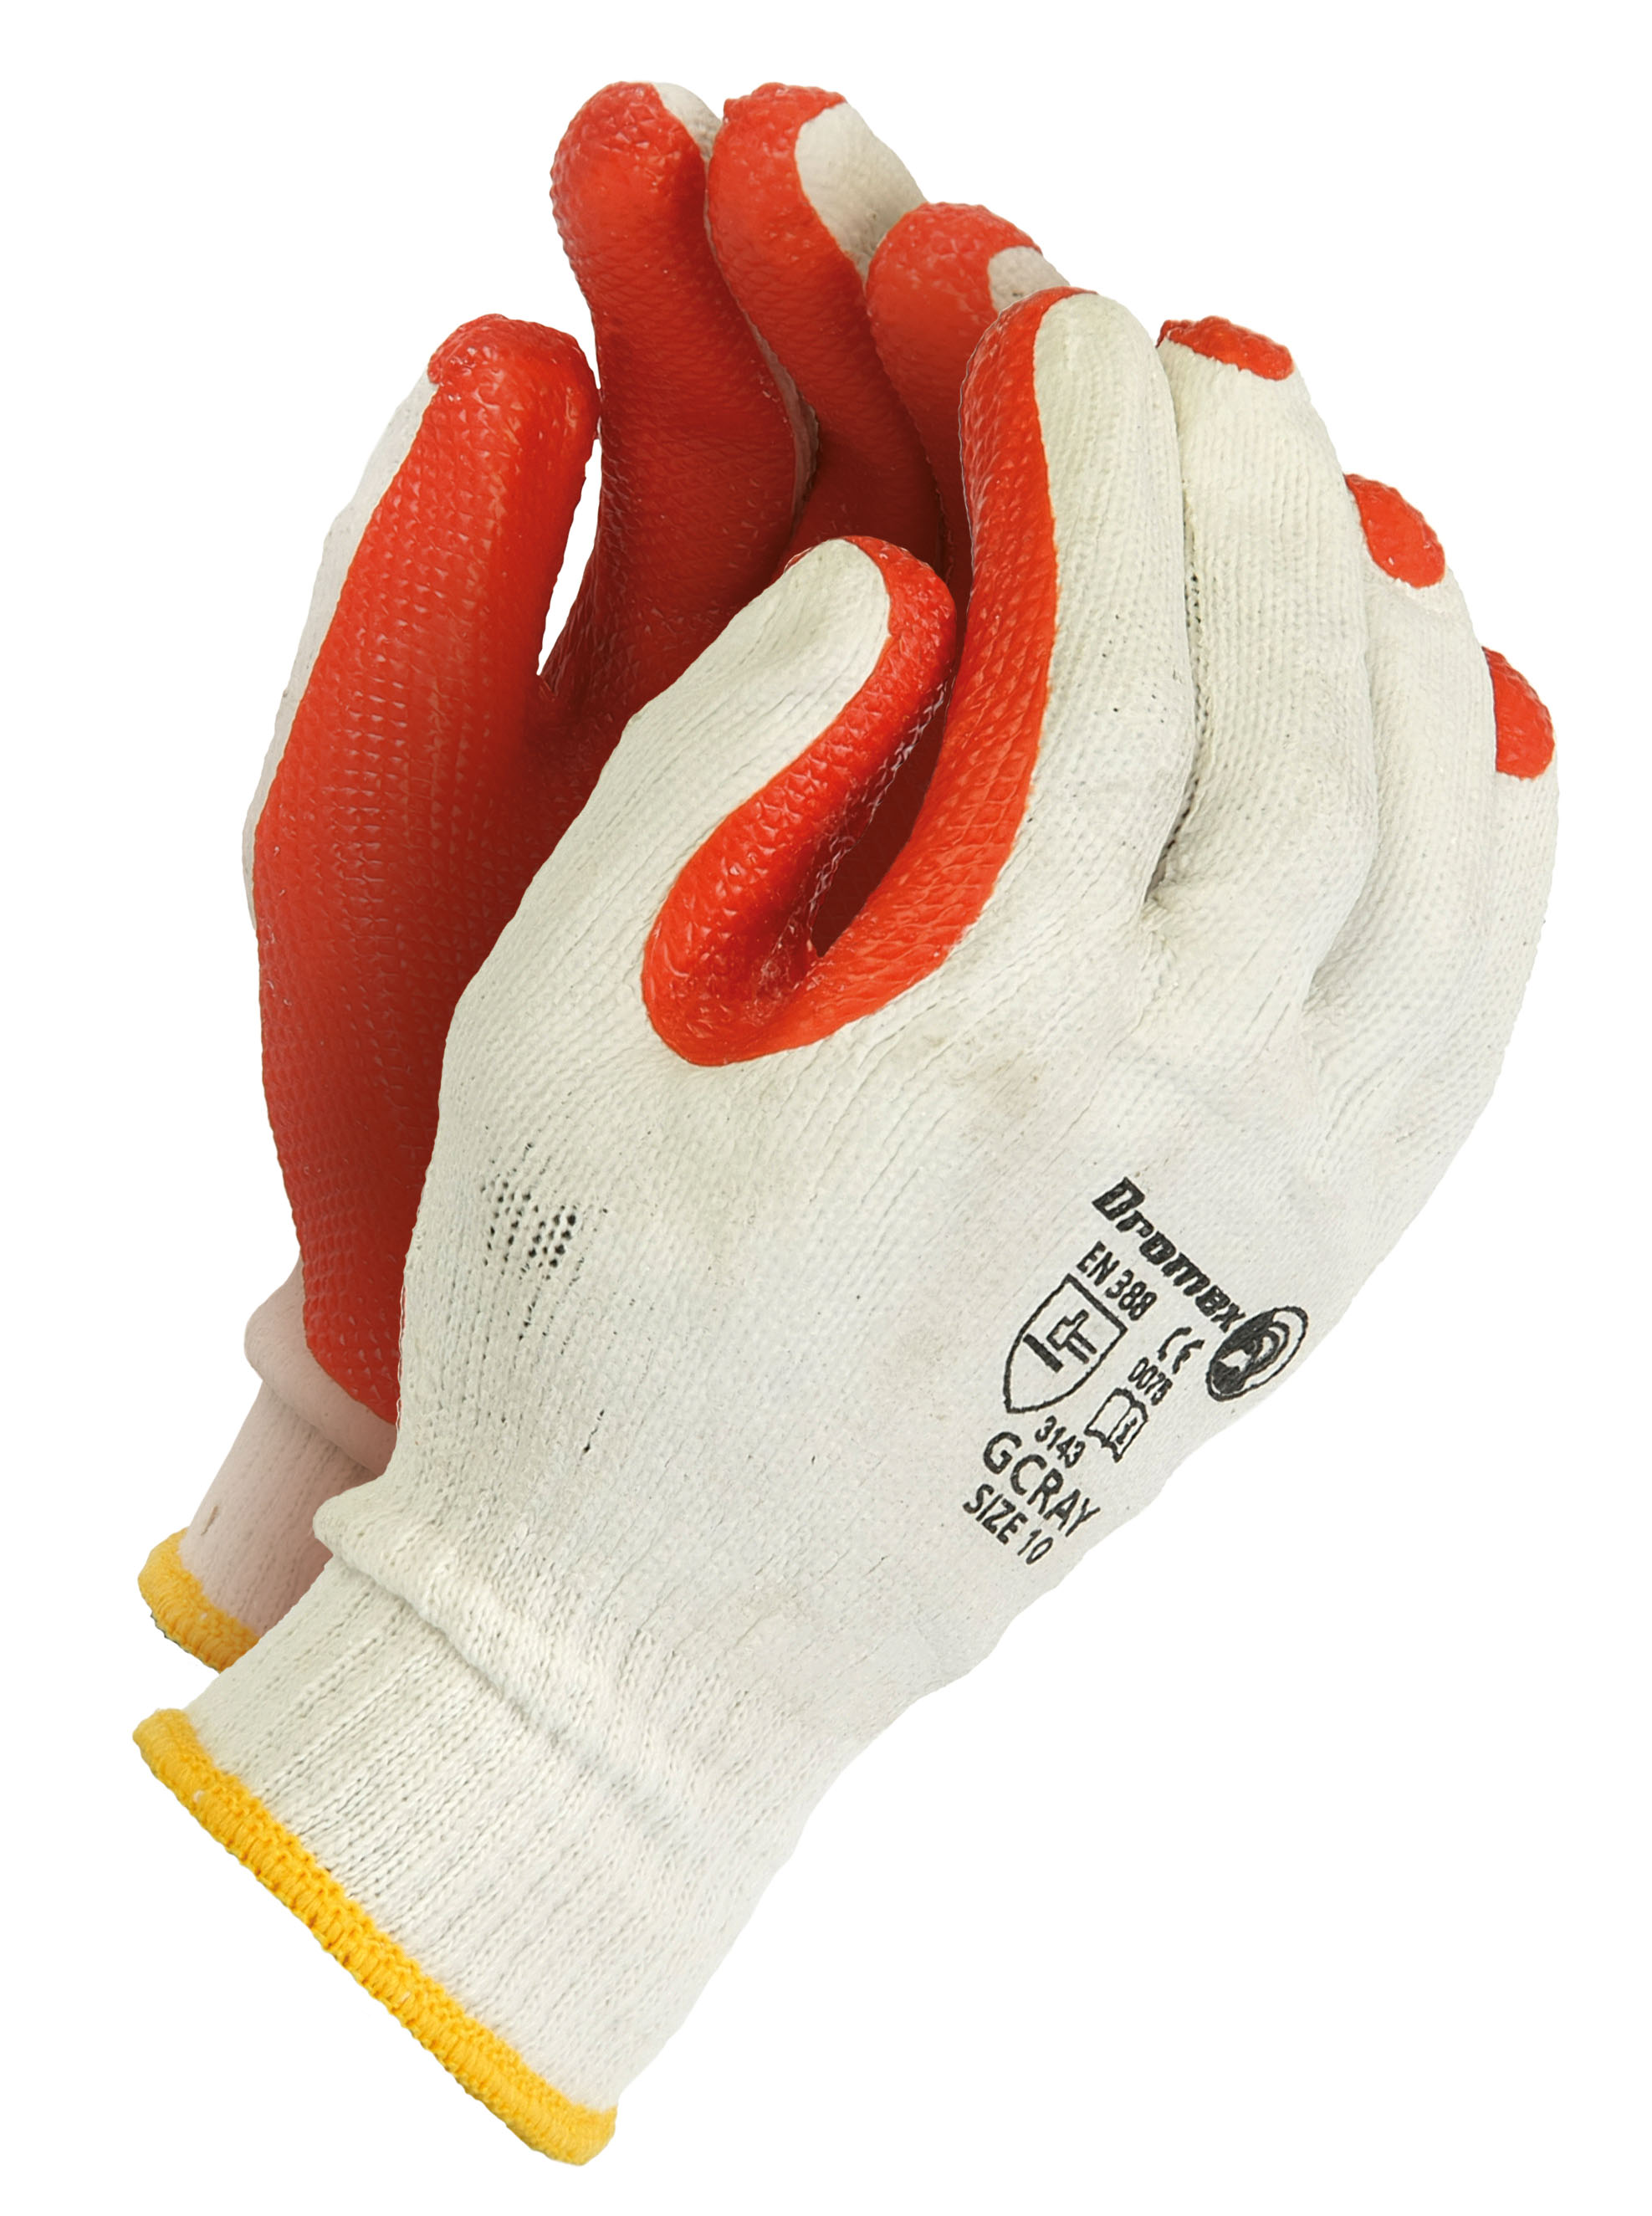 Safety Wear Hand Protection Rubber Crayfish